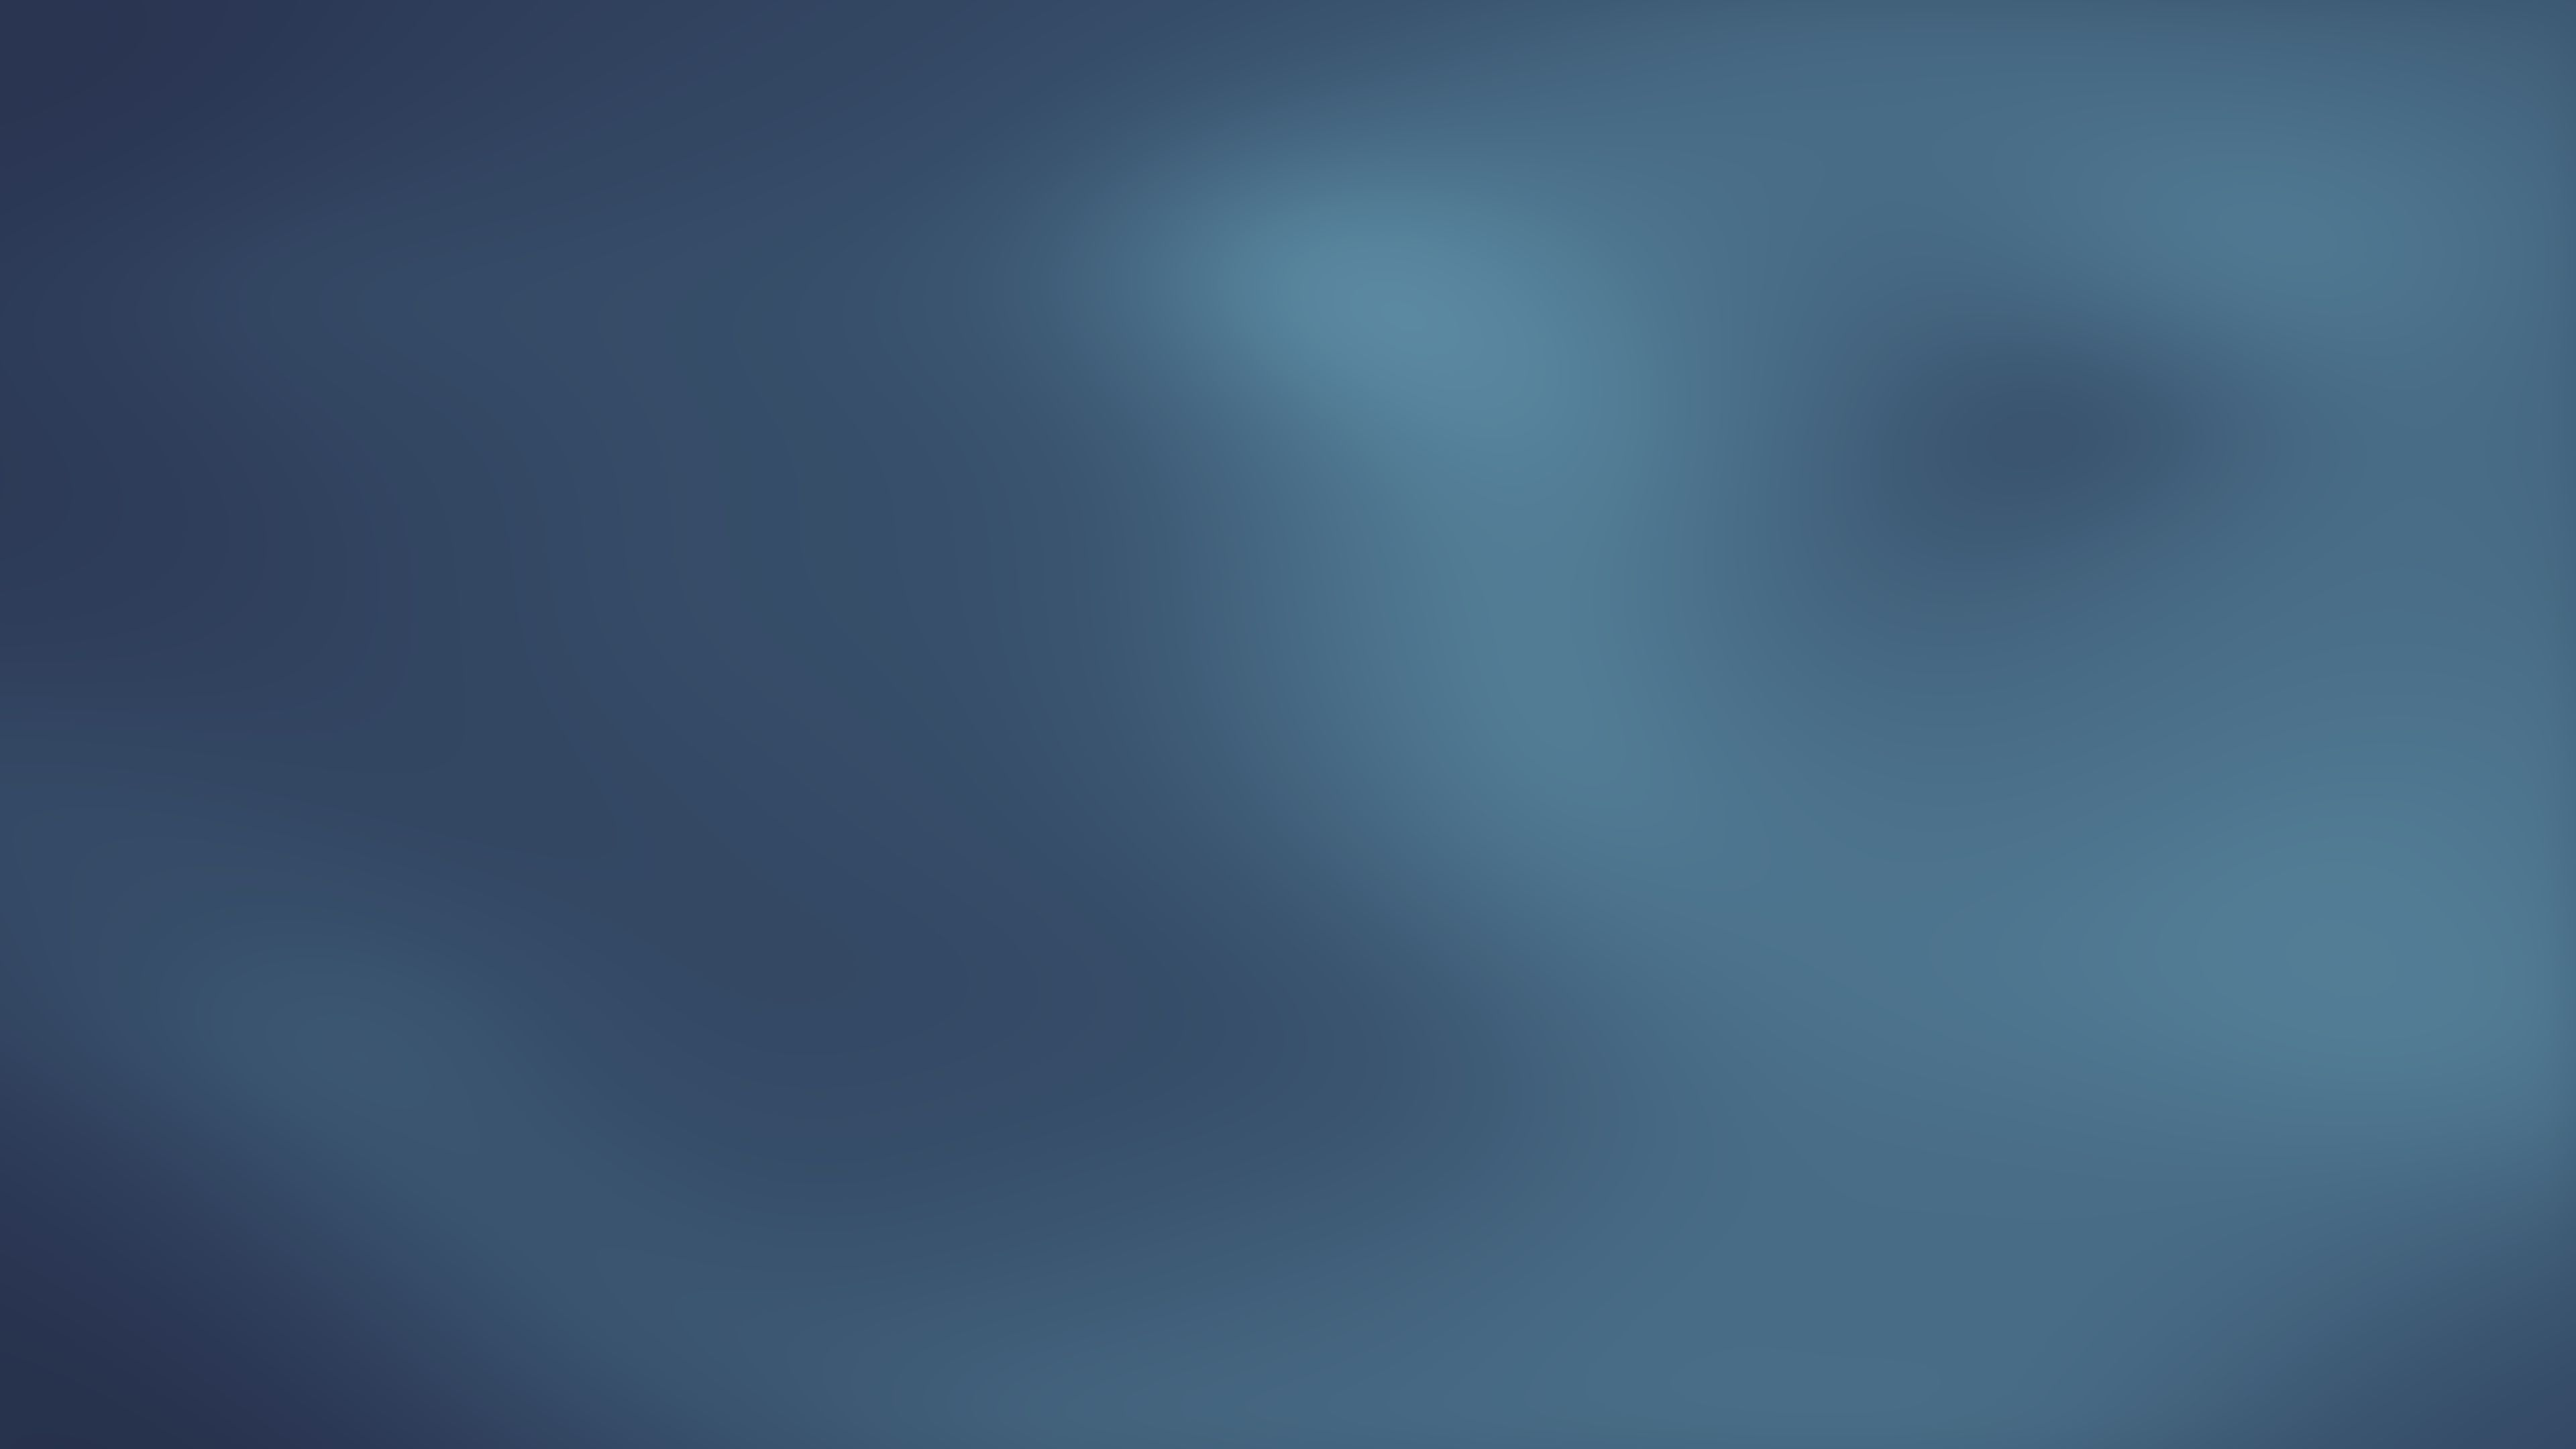 FREE Motion Backgrounds downloops Creative Motion Backgrounds 3840x2160